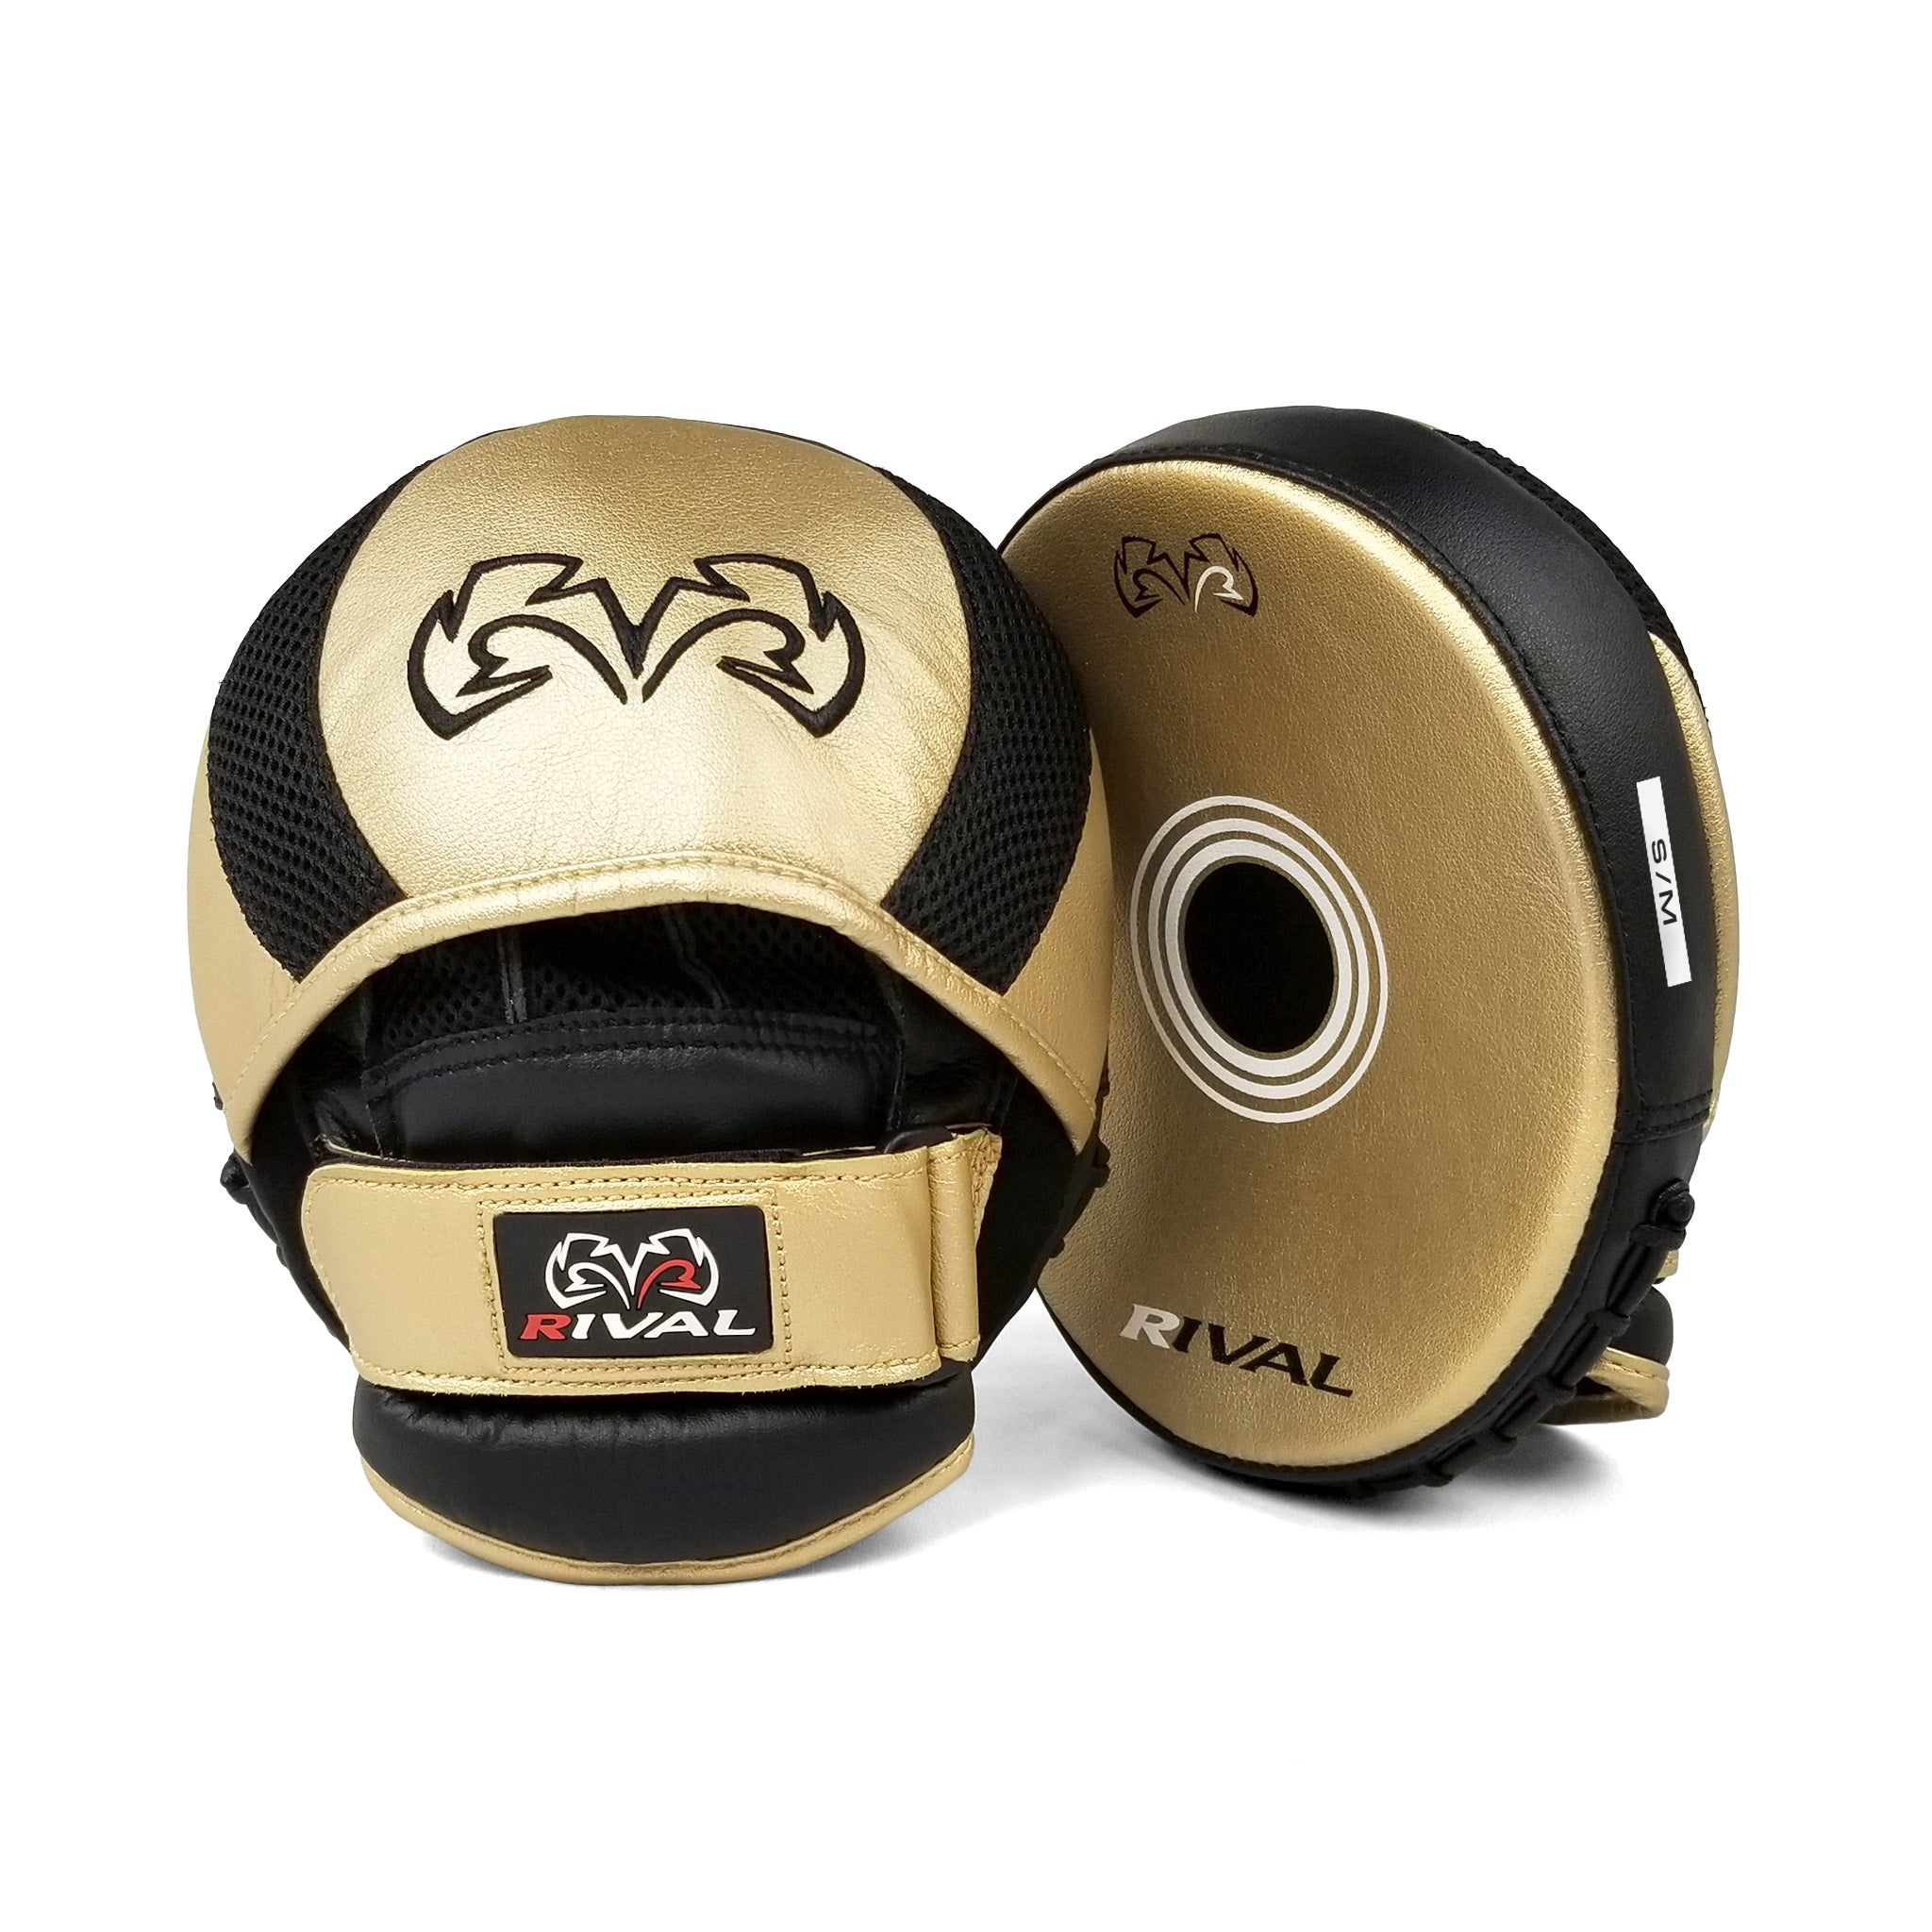 Rival Boxing Parabolic Punch Mitts with Finger Cover